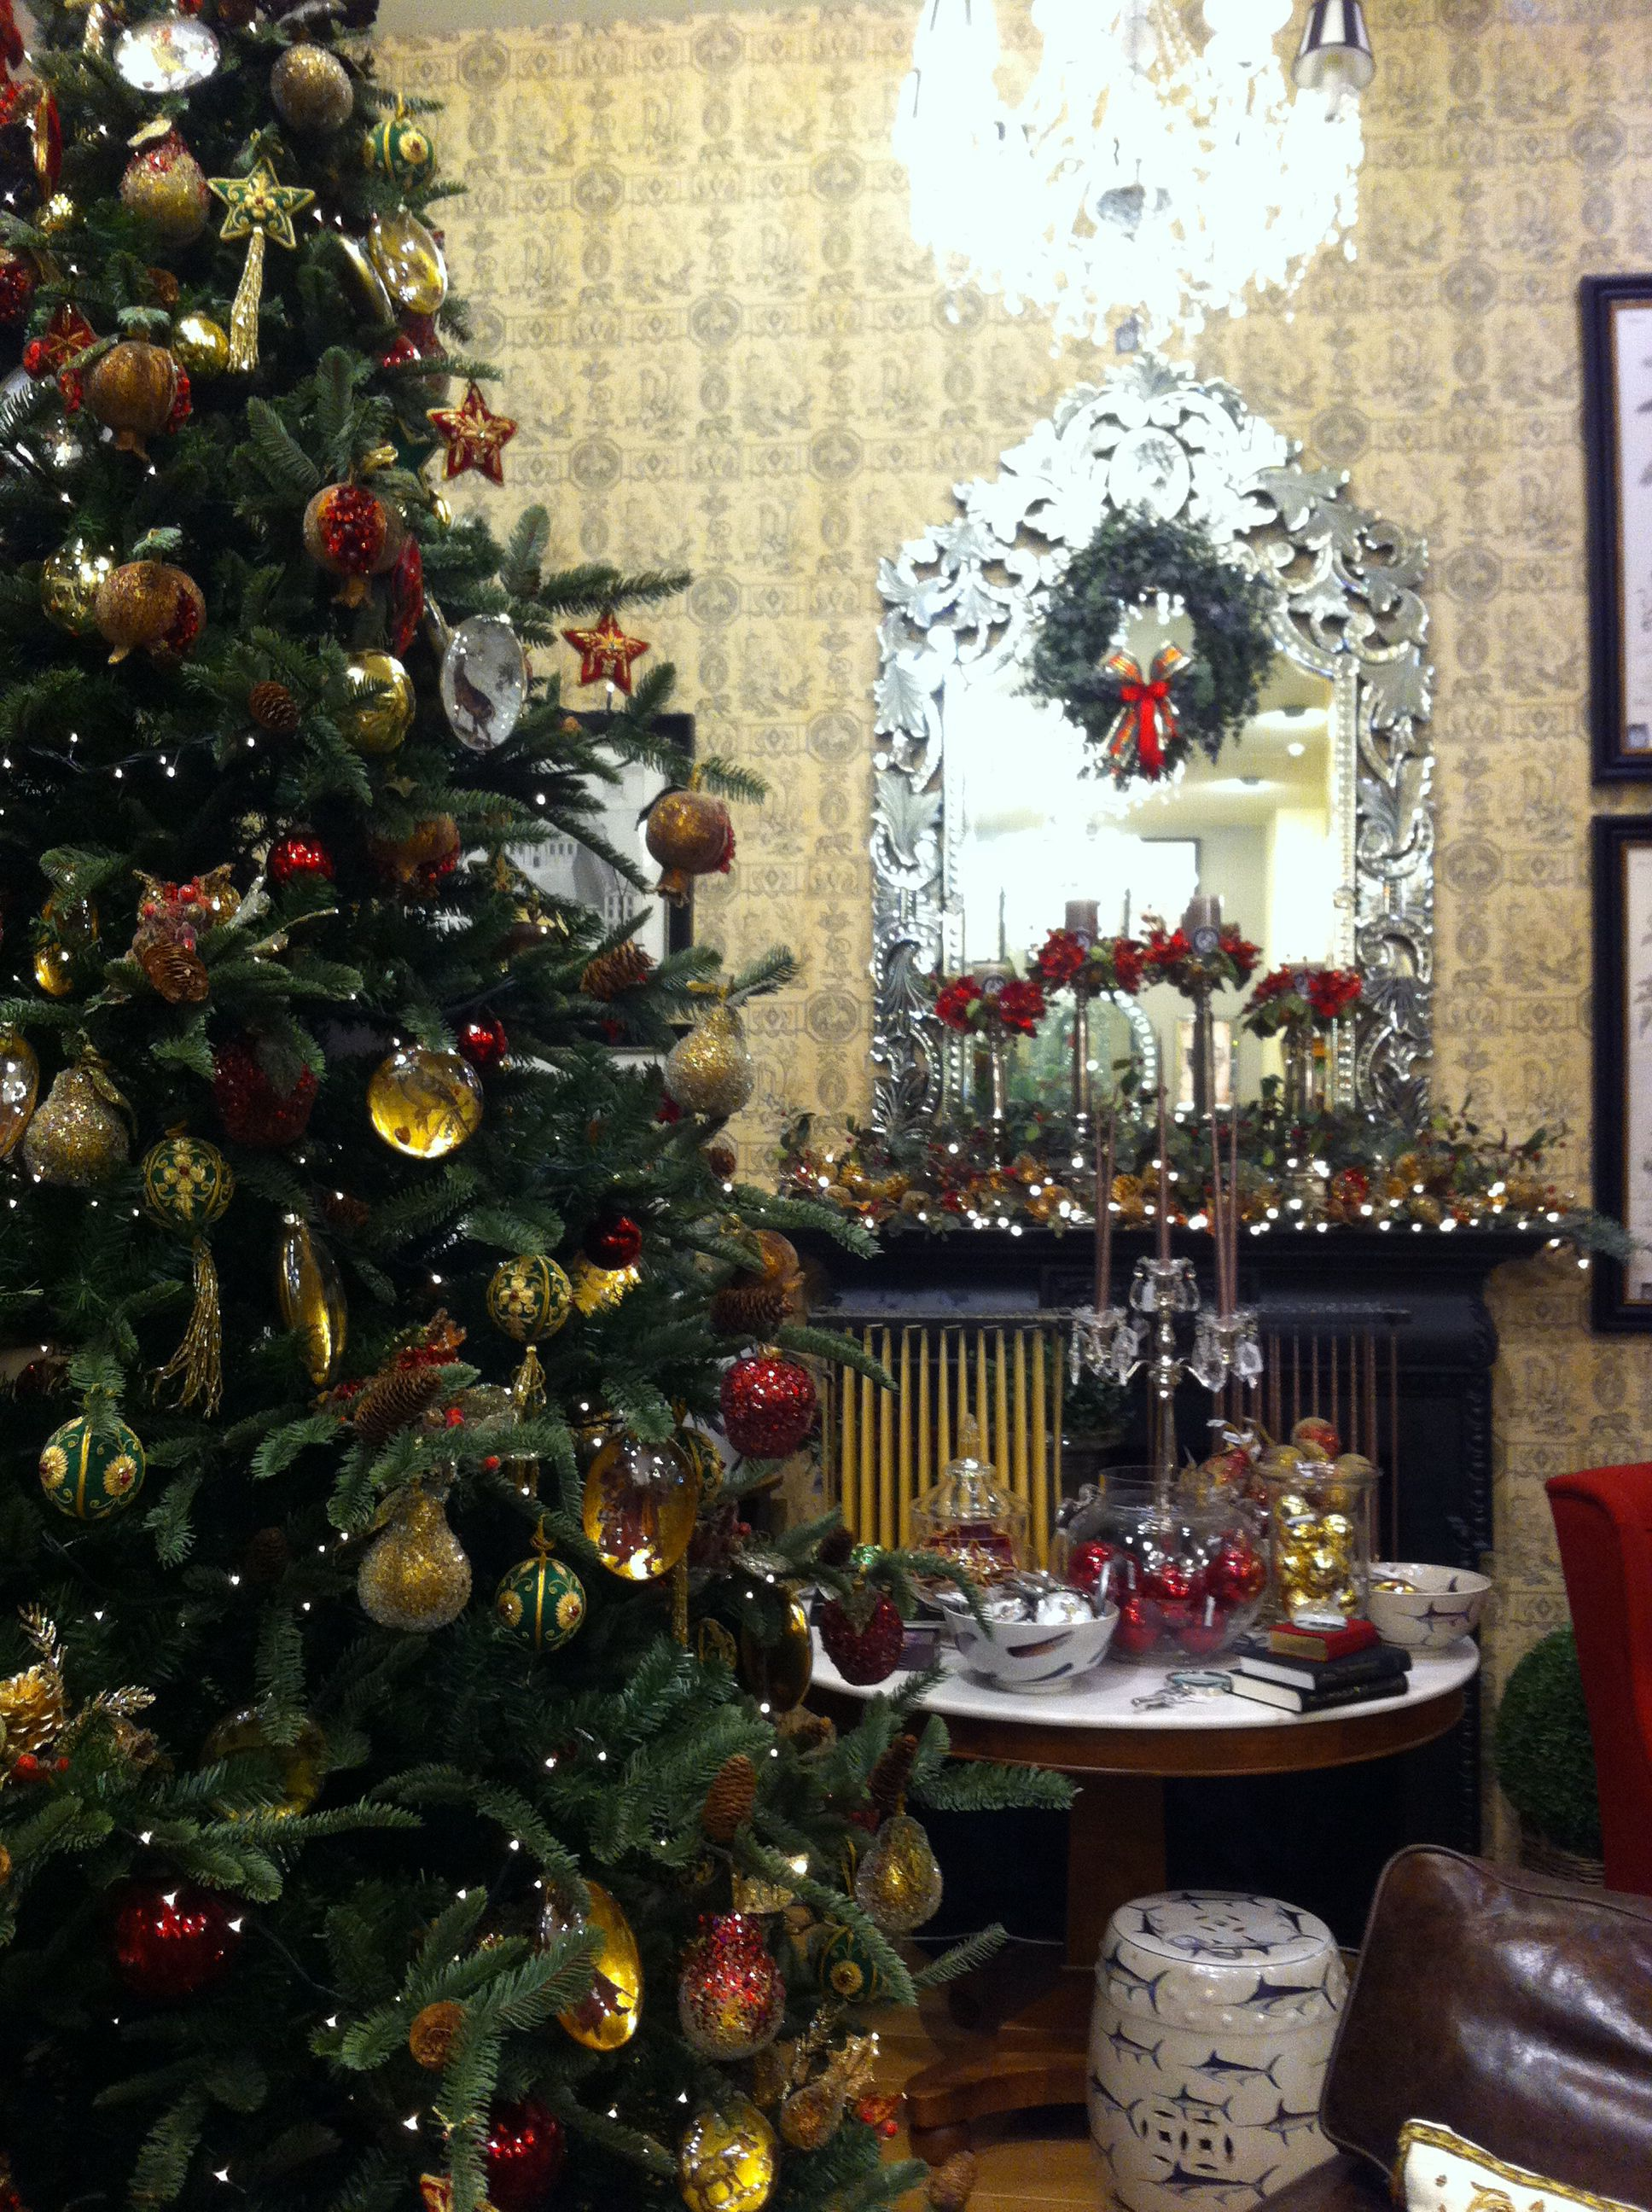 Christmas Tree In India.Classic Christmas Tree In India Jane Richmond Store 2013